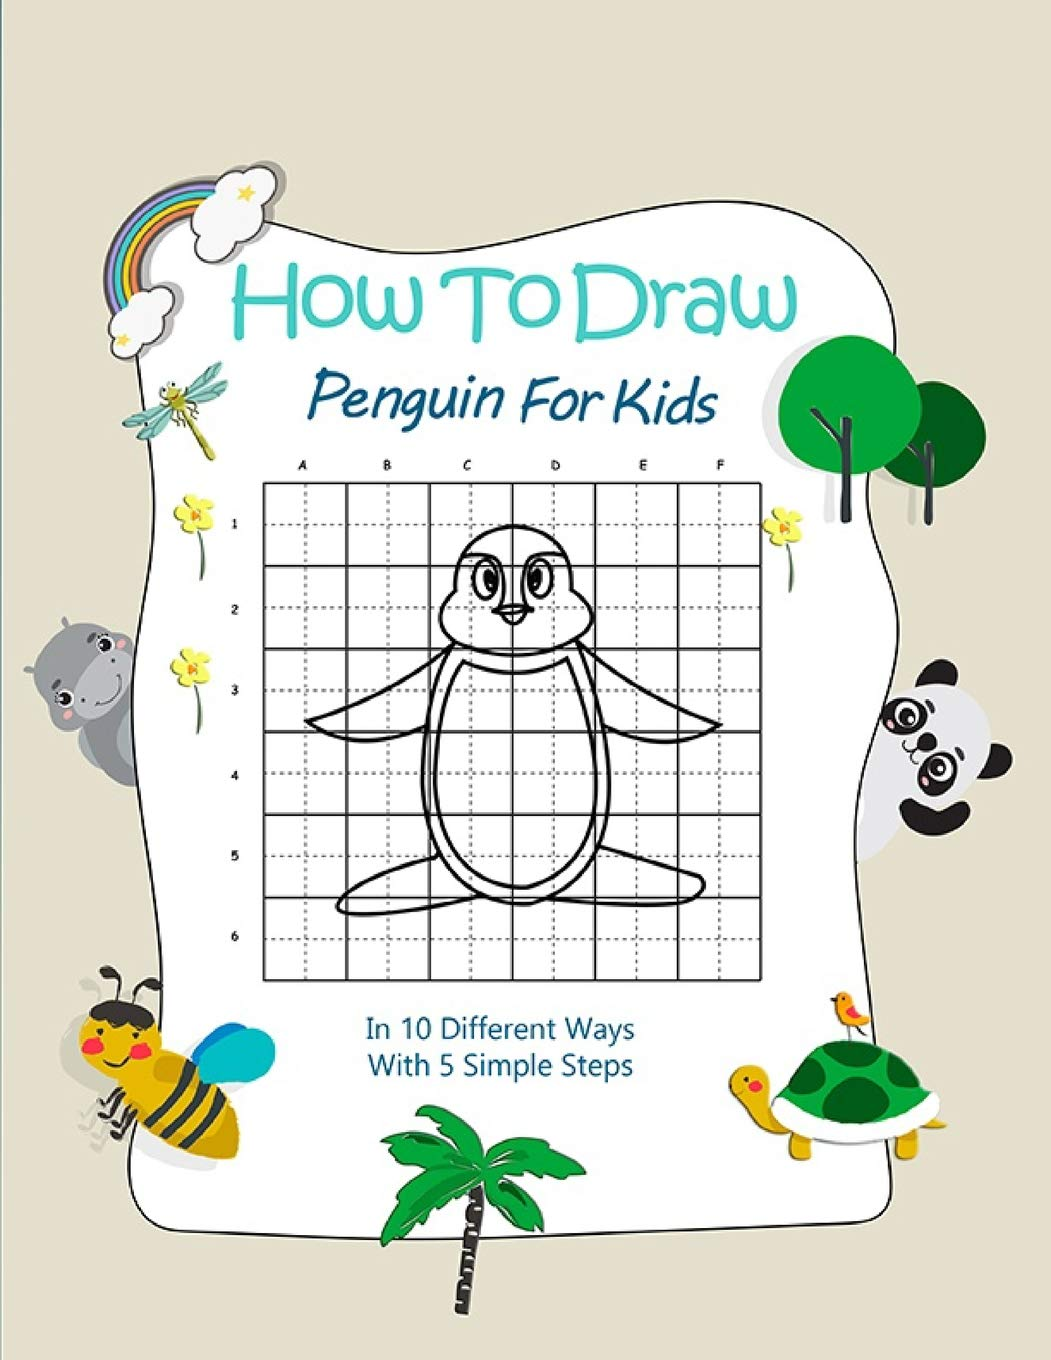 How To Draw Penguin For Kids In 10 Different Ways With 5 Simple Steps Care Global Baby 9781797544656 Amazon Com Books